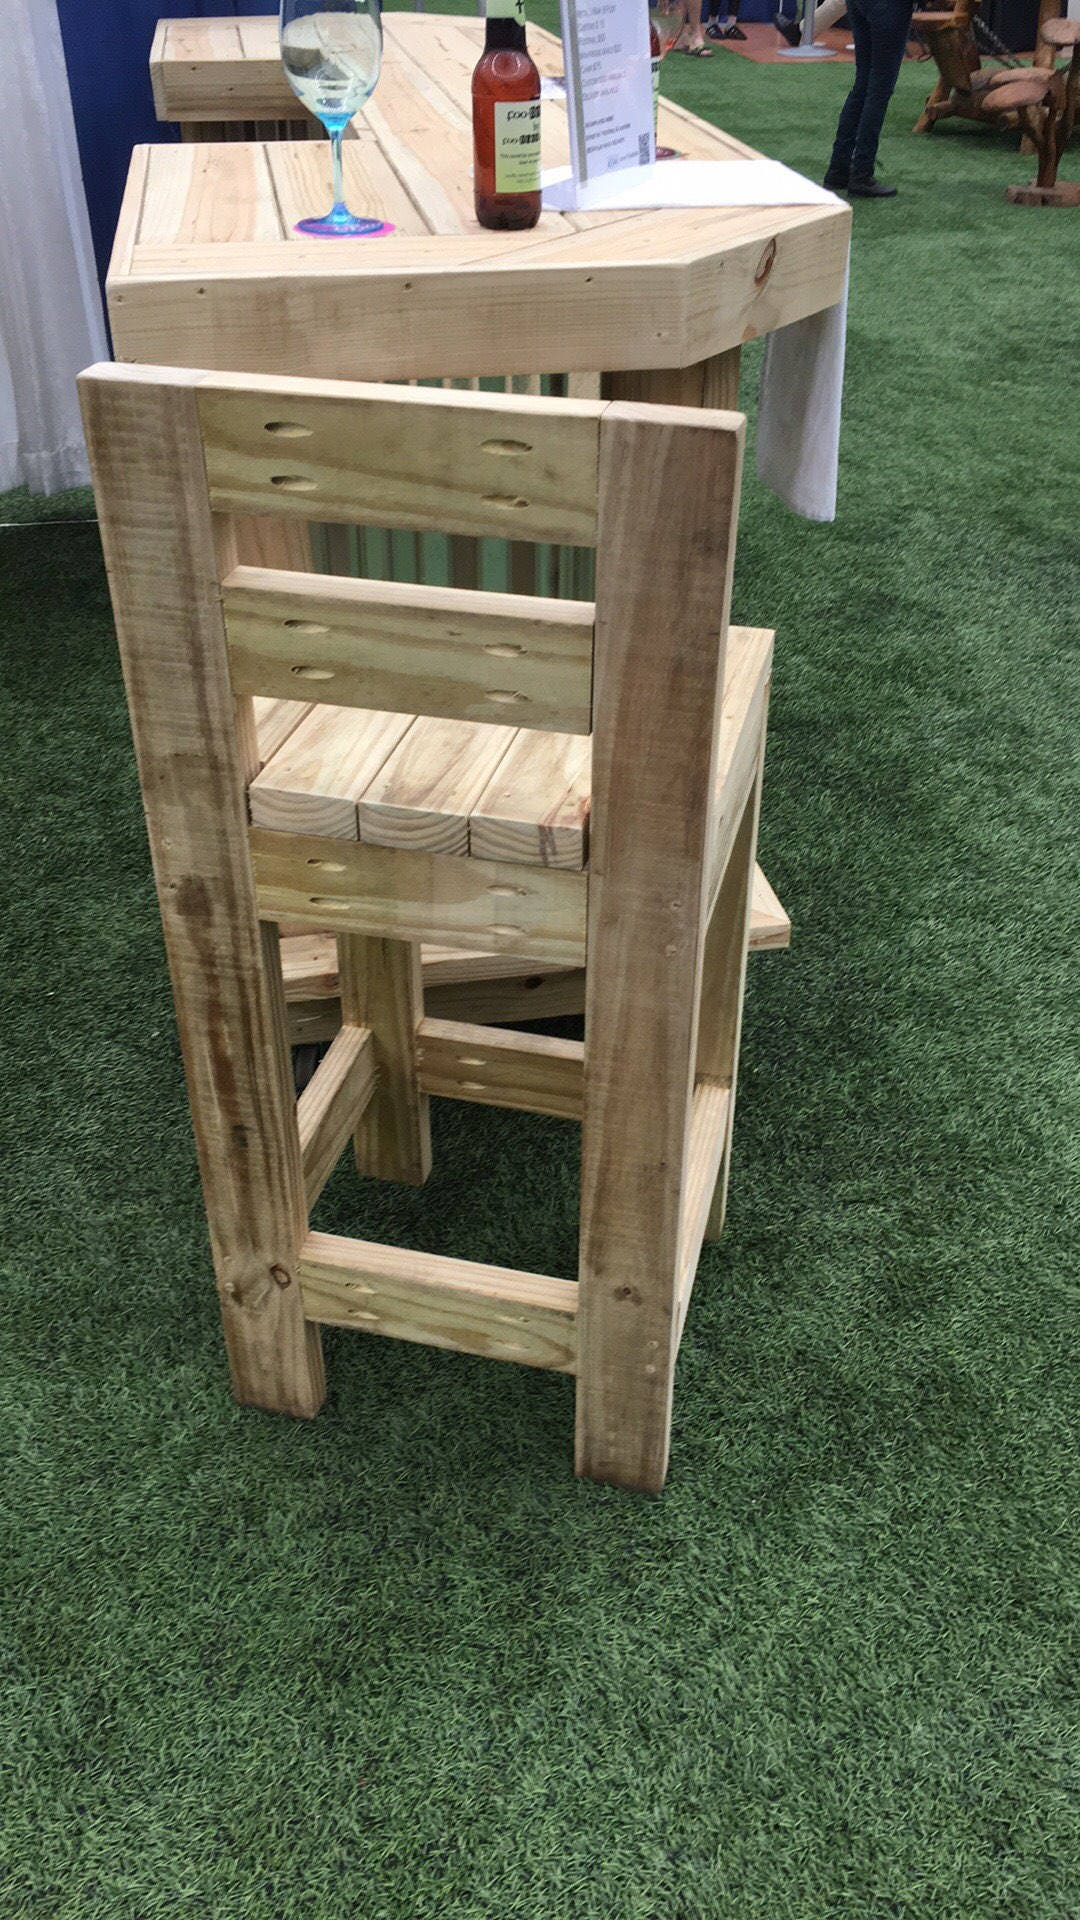 Exterior bar stool durable rustic outdoor bar stools hand made with exterior treated lumber Rustic outdoor bar stools